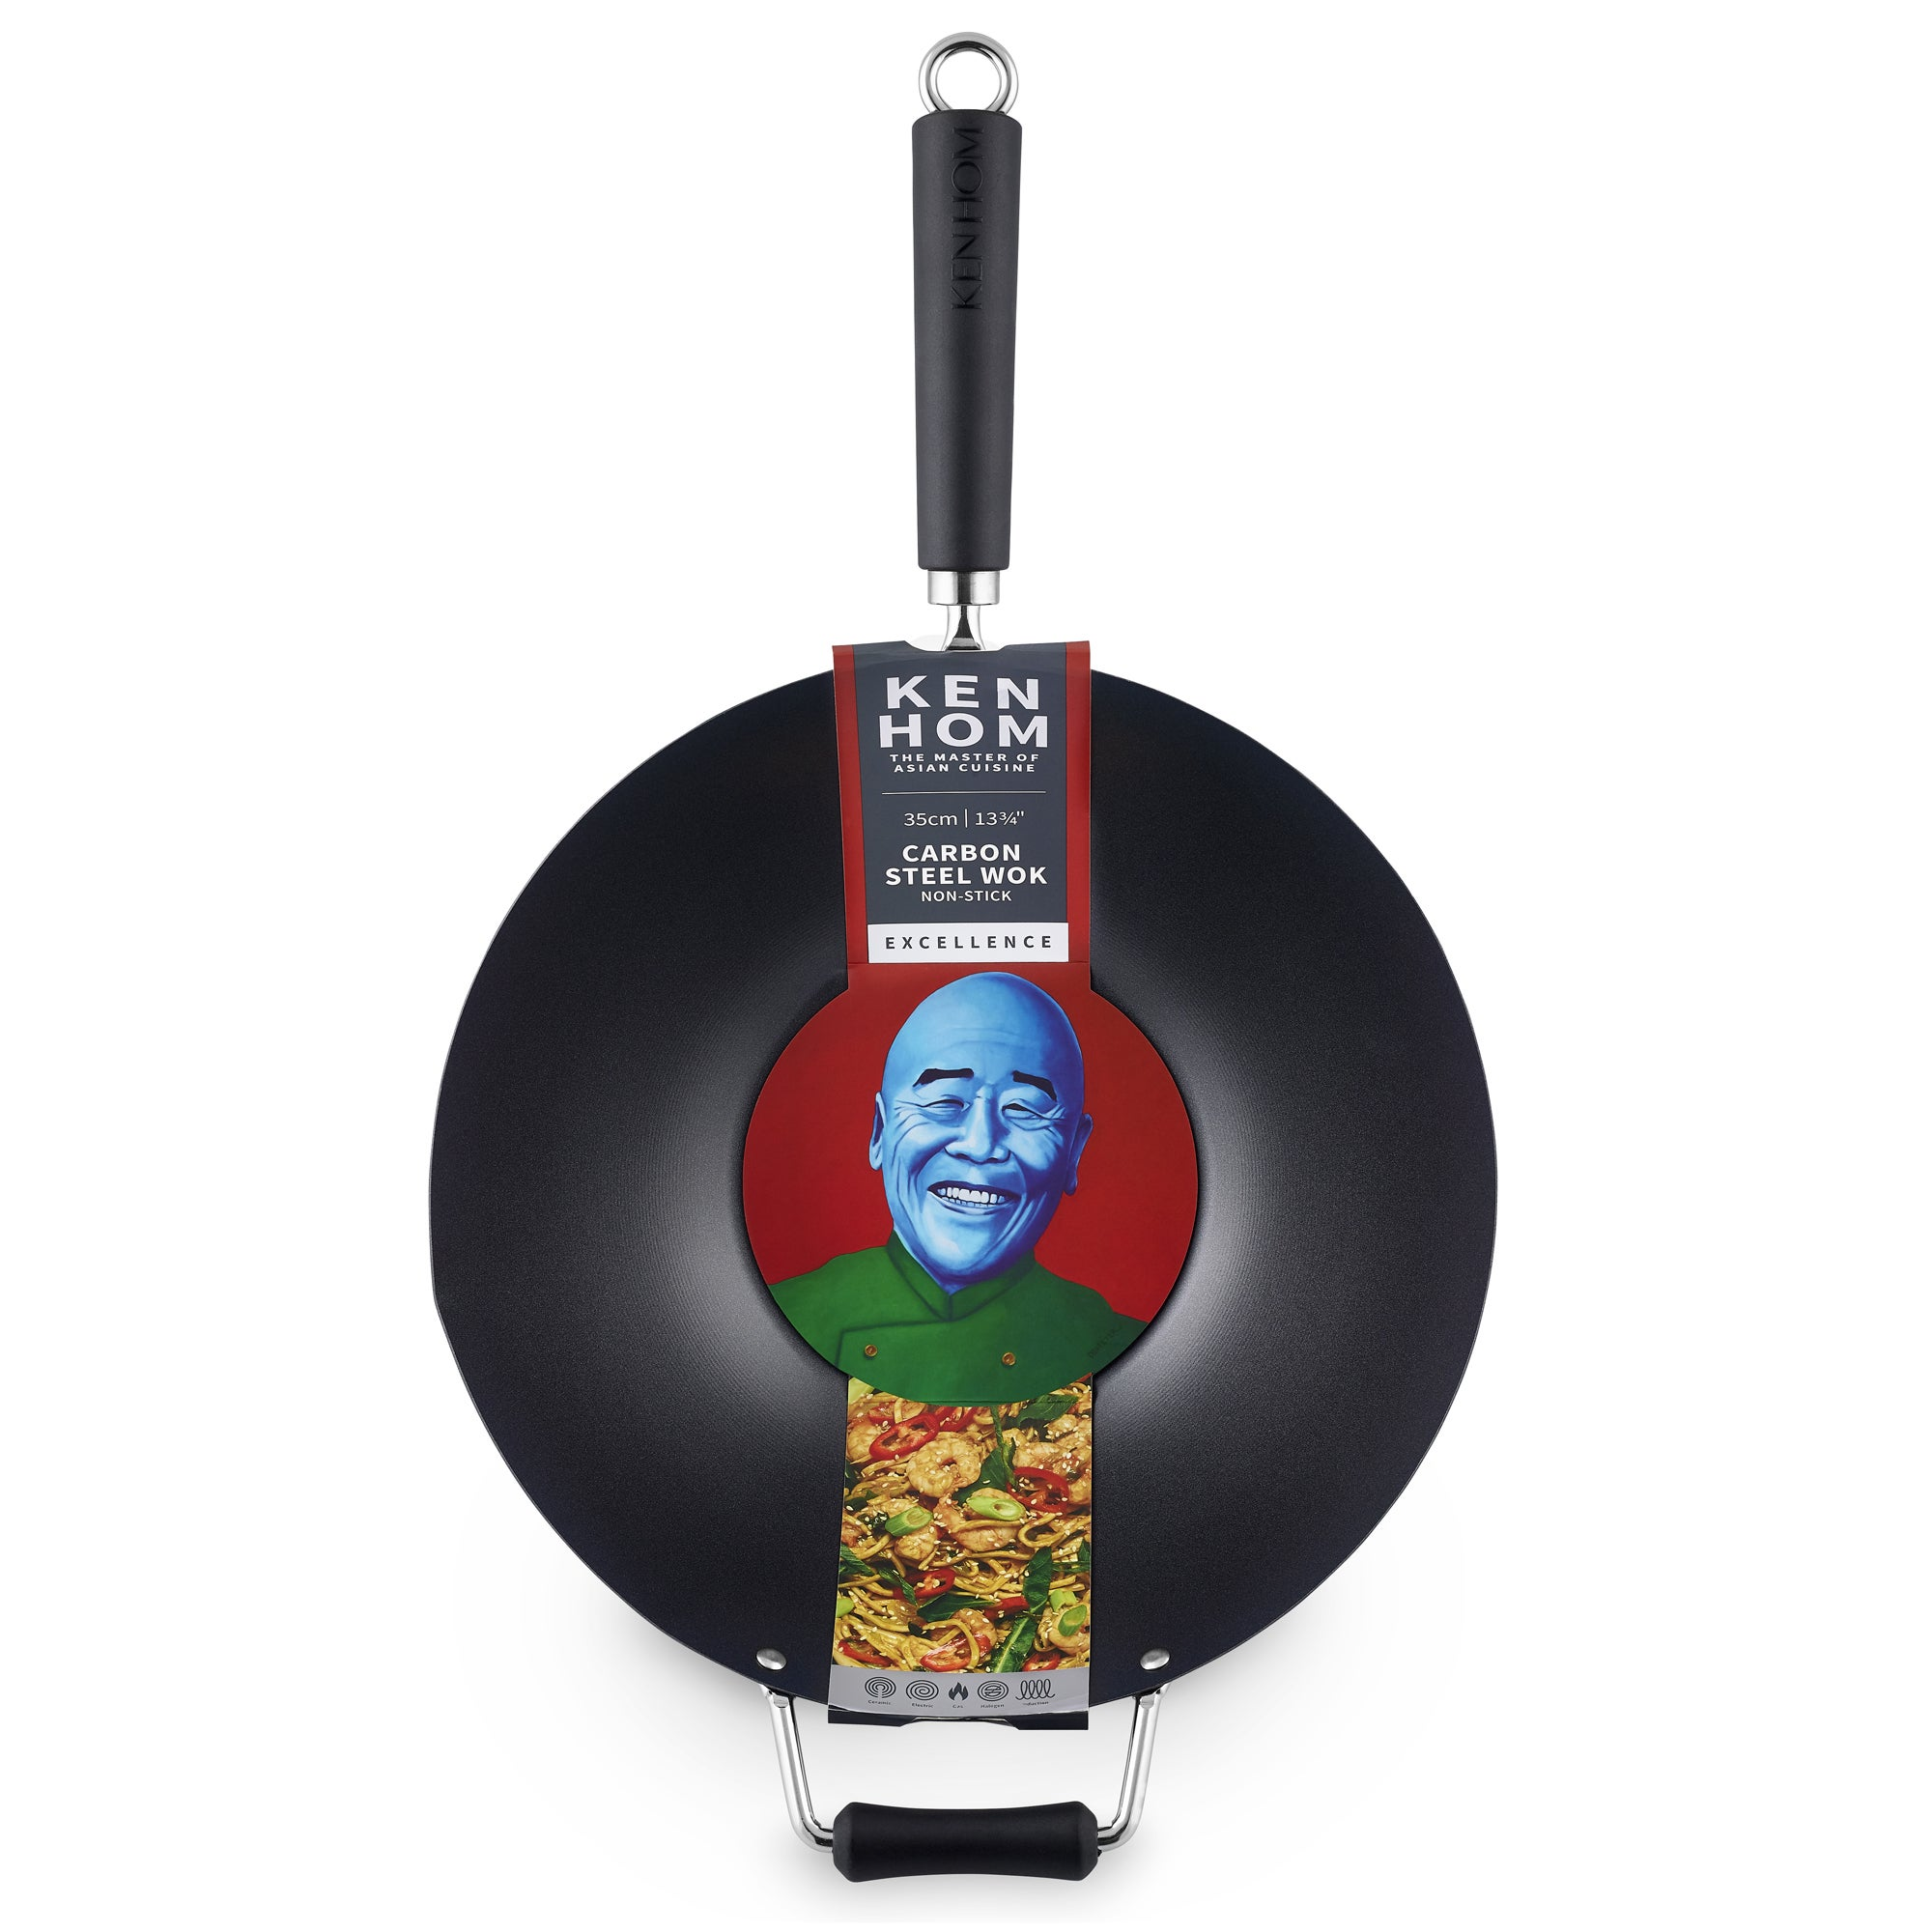 Ken Hom Performance 36cm Carbon Steel Wok Black